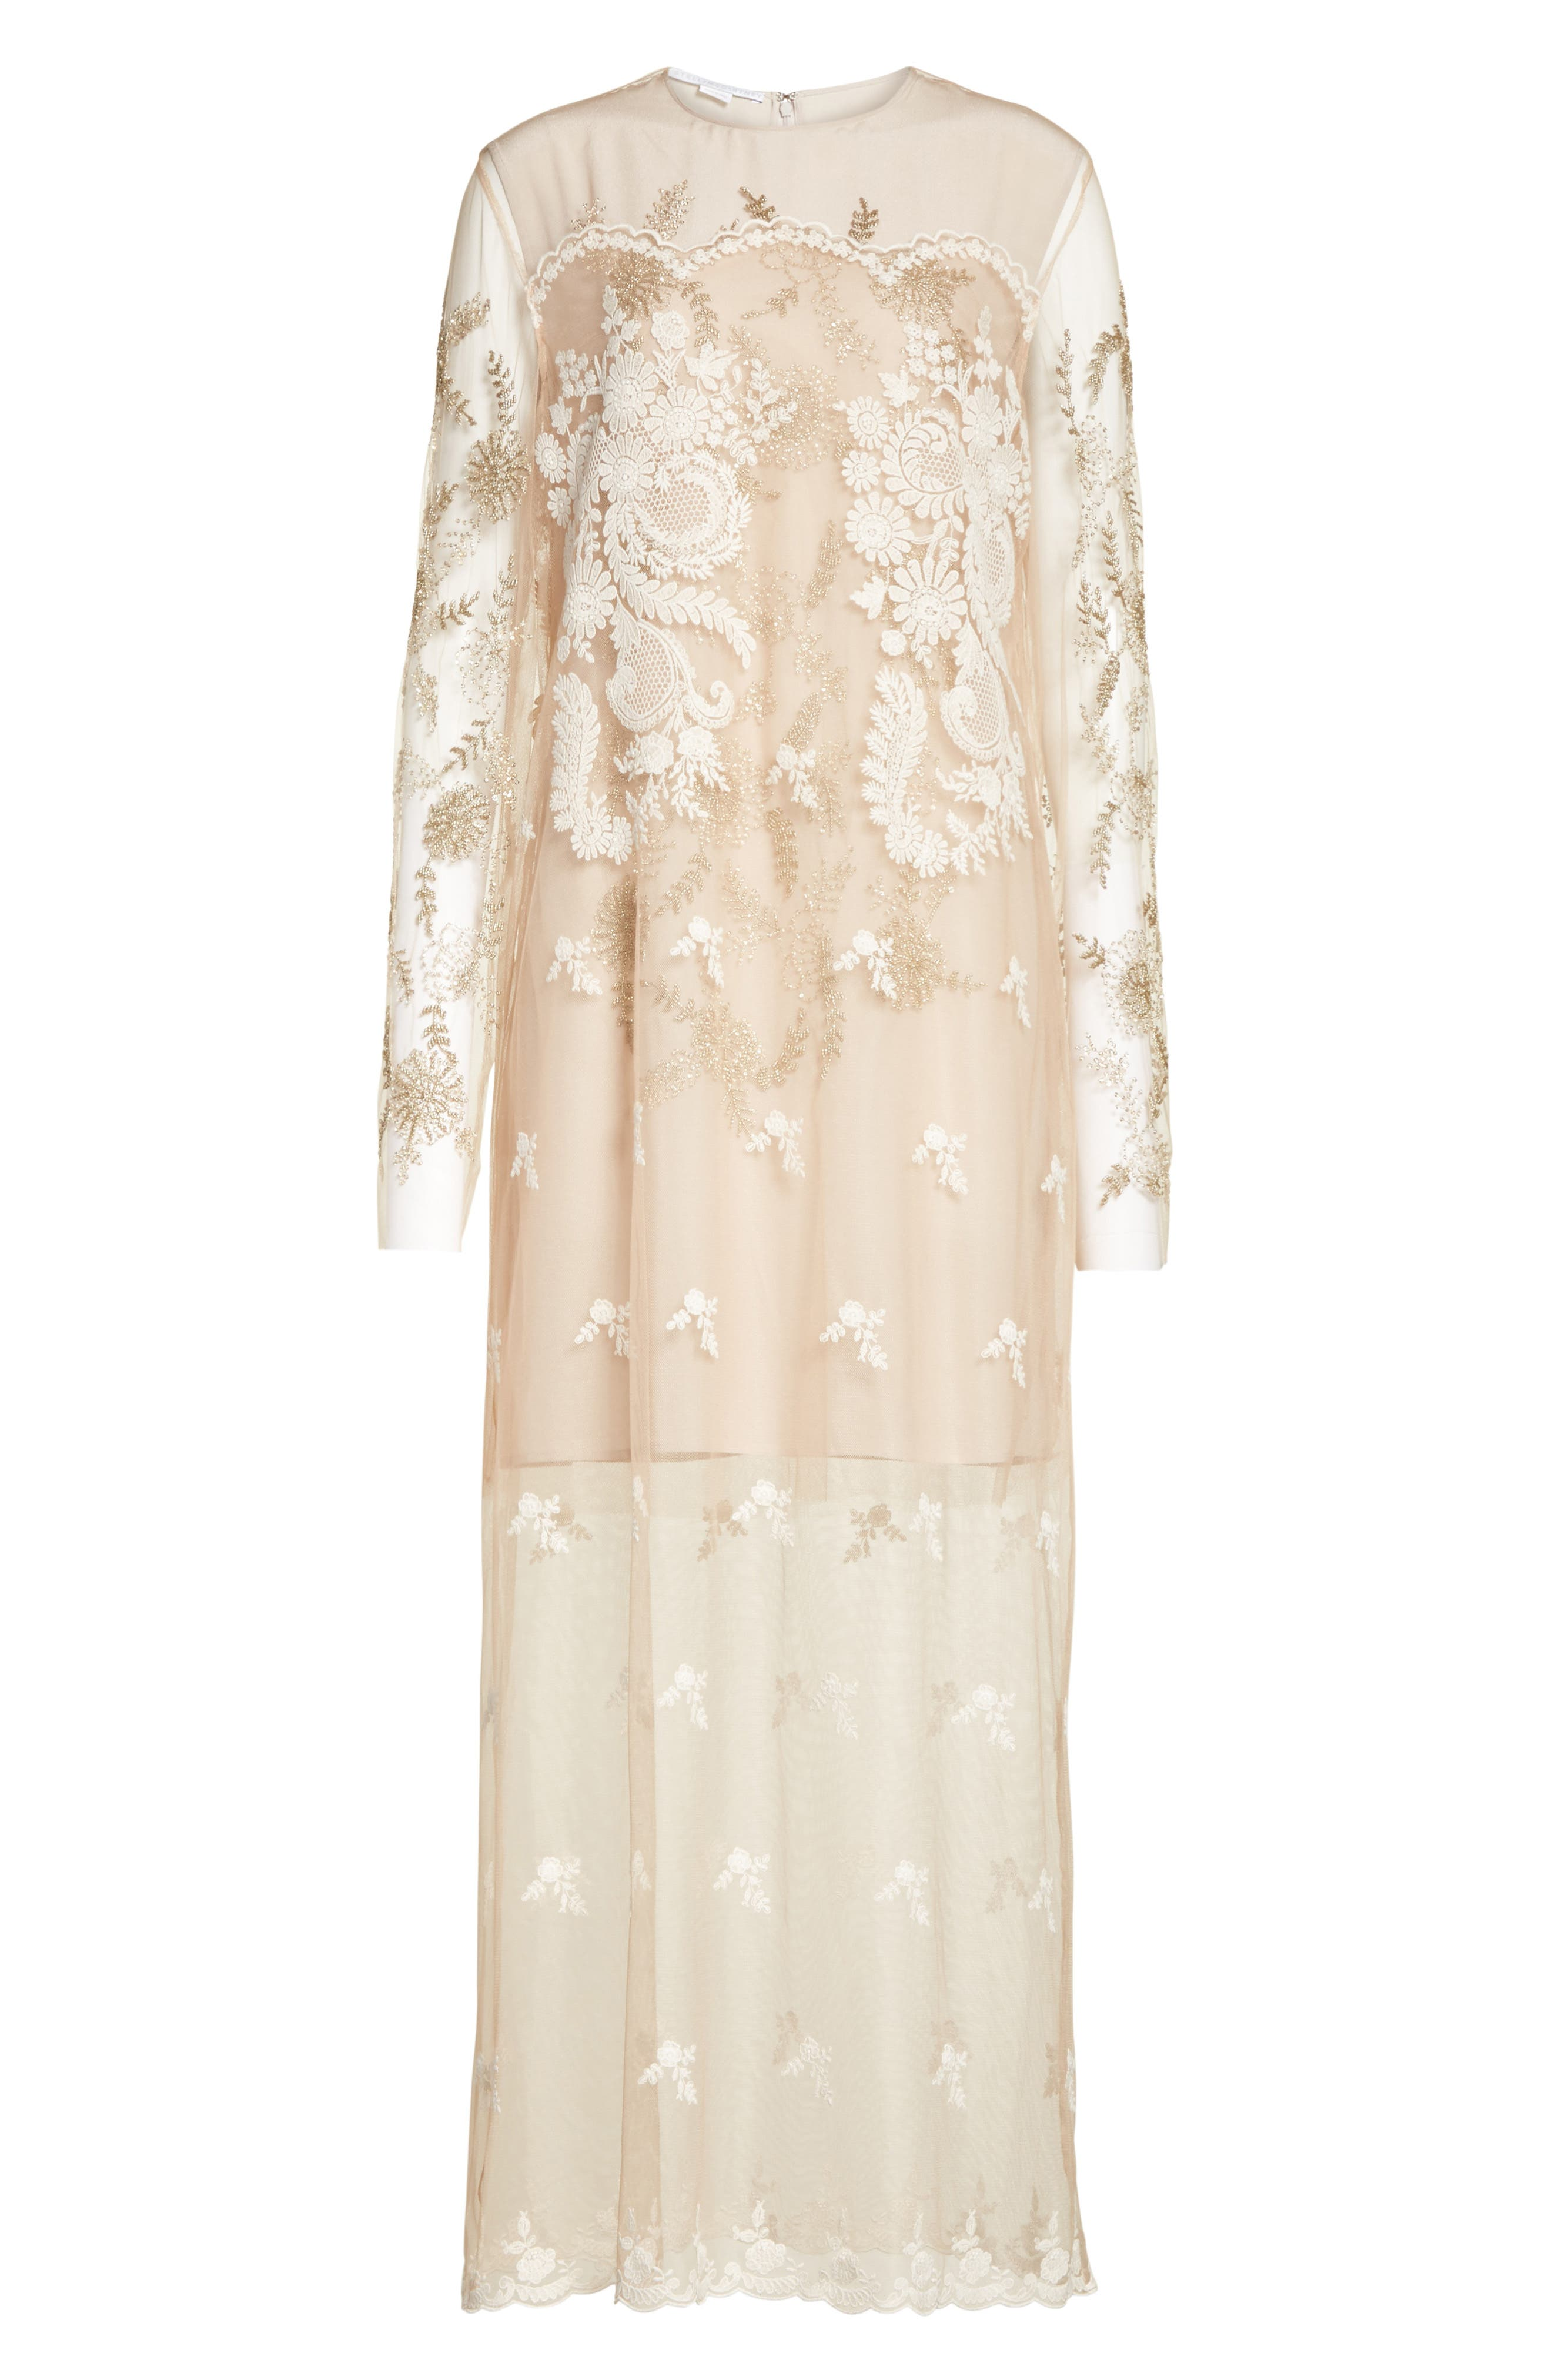 Embroidered Tulle Lace Dress,                             Alternate thumbnail 7, color,                             Camel